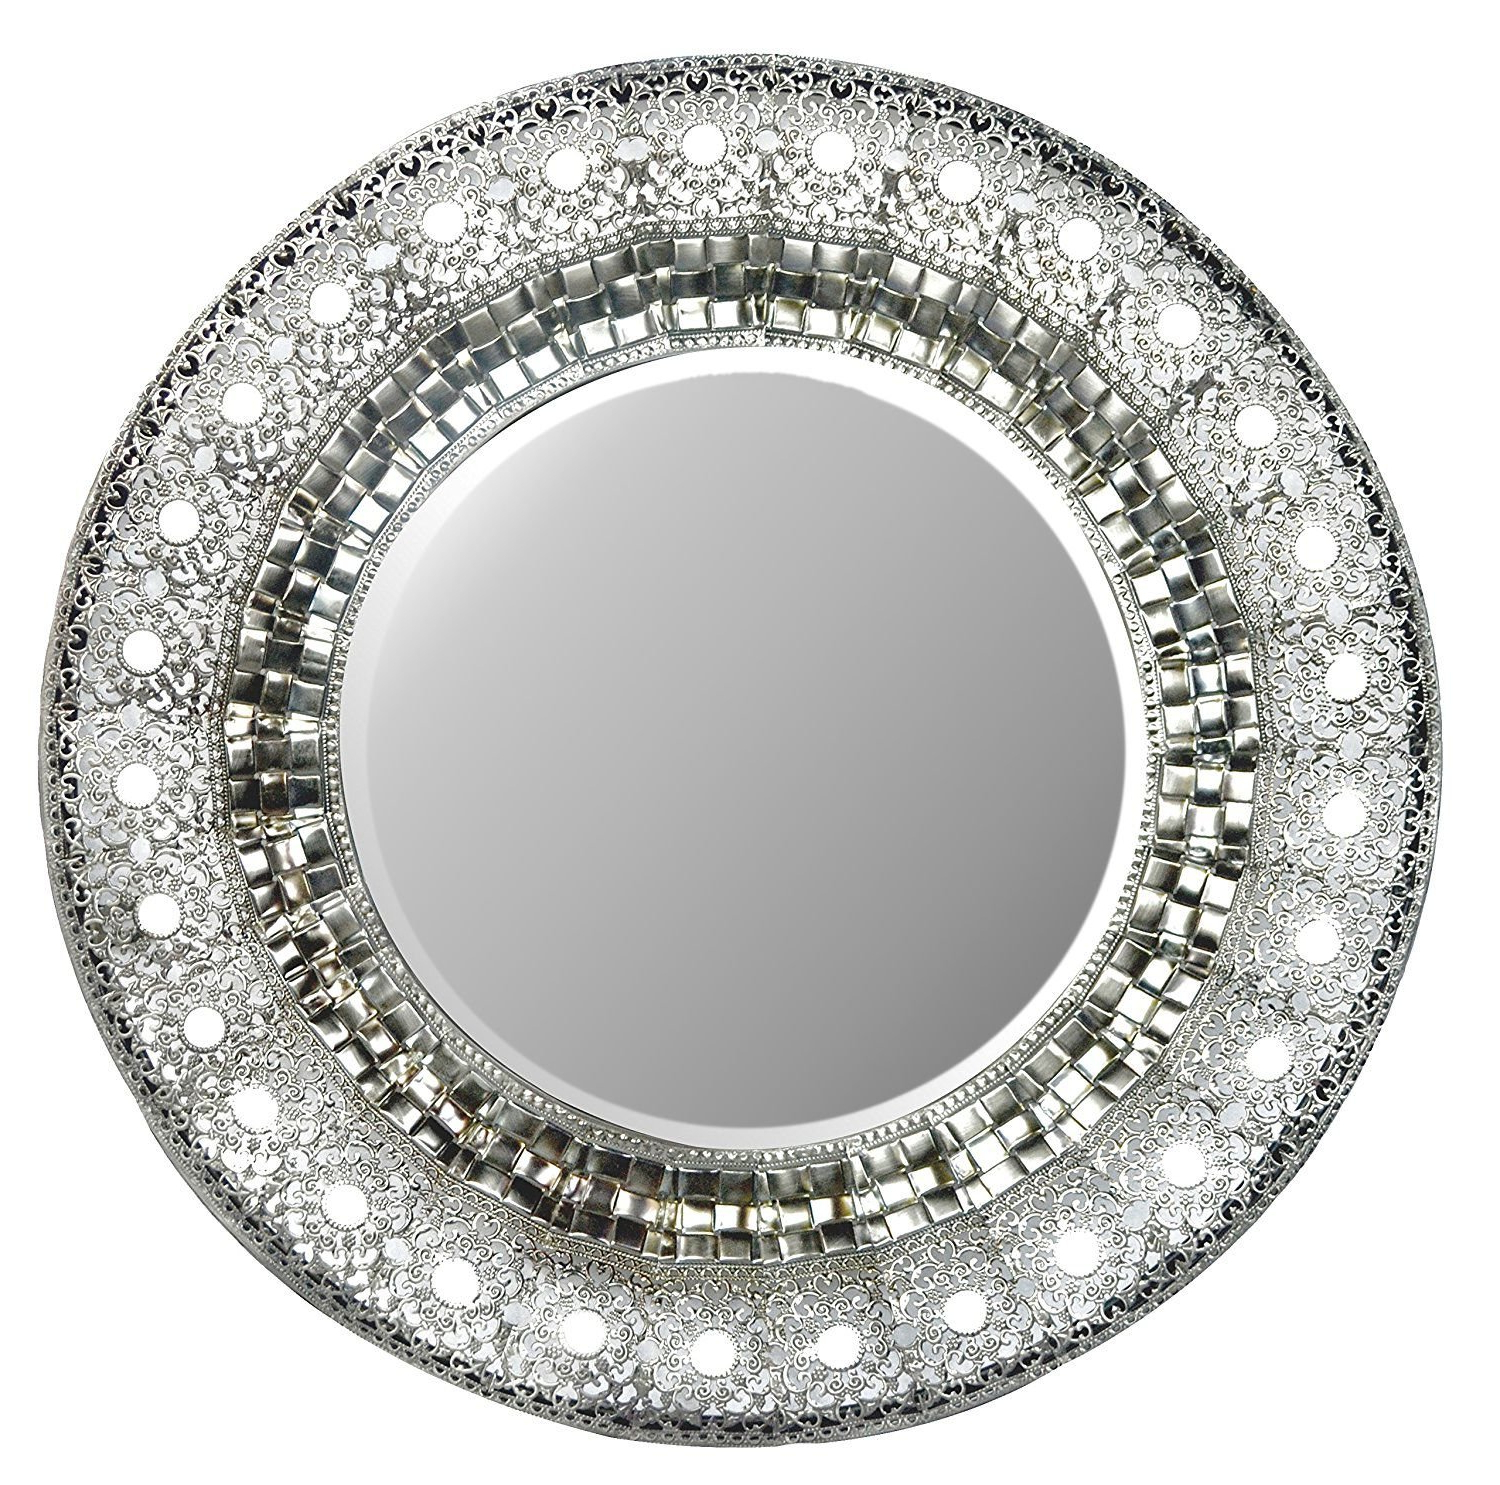 "2019 Lulu Decor, 19"" Oriental Round Silver Metal Beveled Wall Mirror, Decorative Mirror For Home & Office (oriental 19"") Inside Round Silver Wall Mirrors (View 5 of 20)"